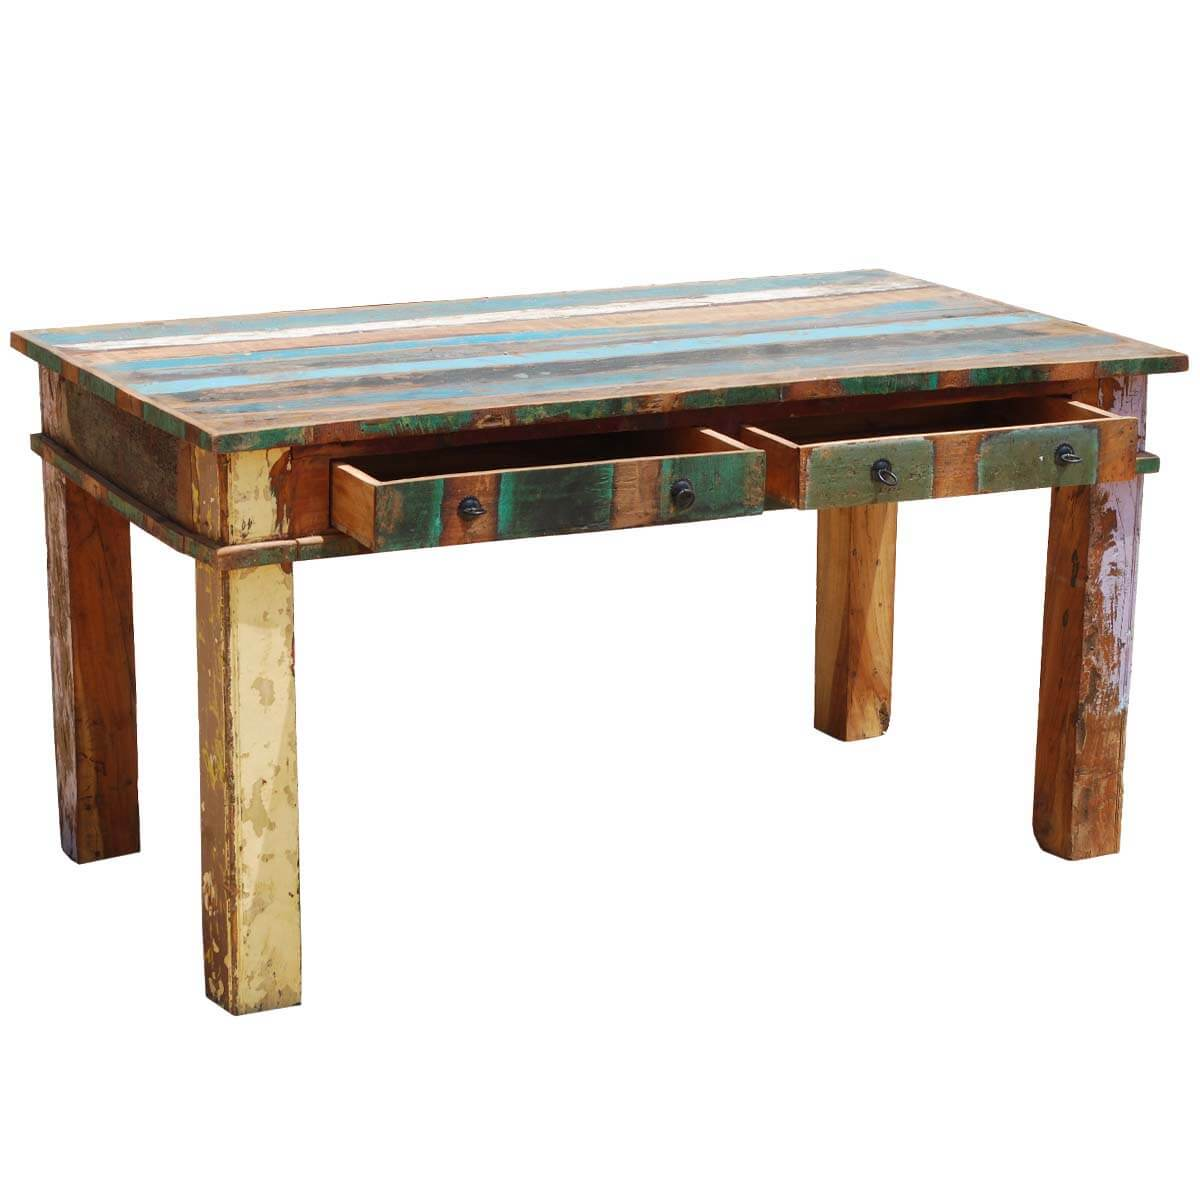 barnwood dining room chairs relax the back office reclaimed wood rustic table furniture